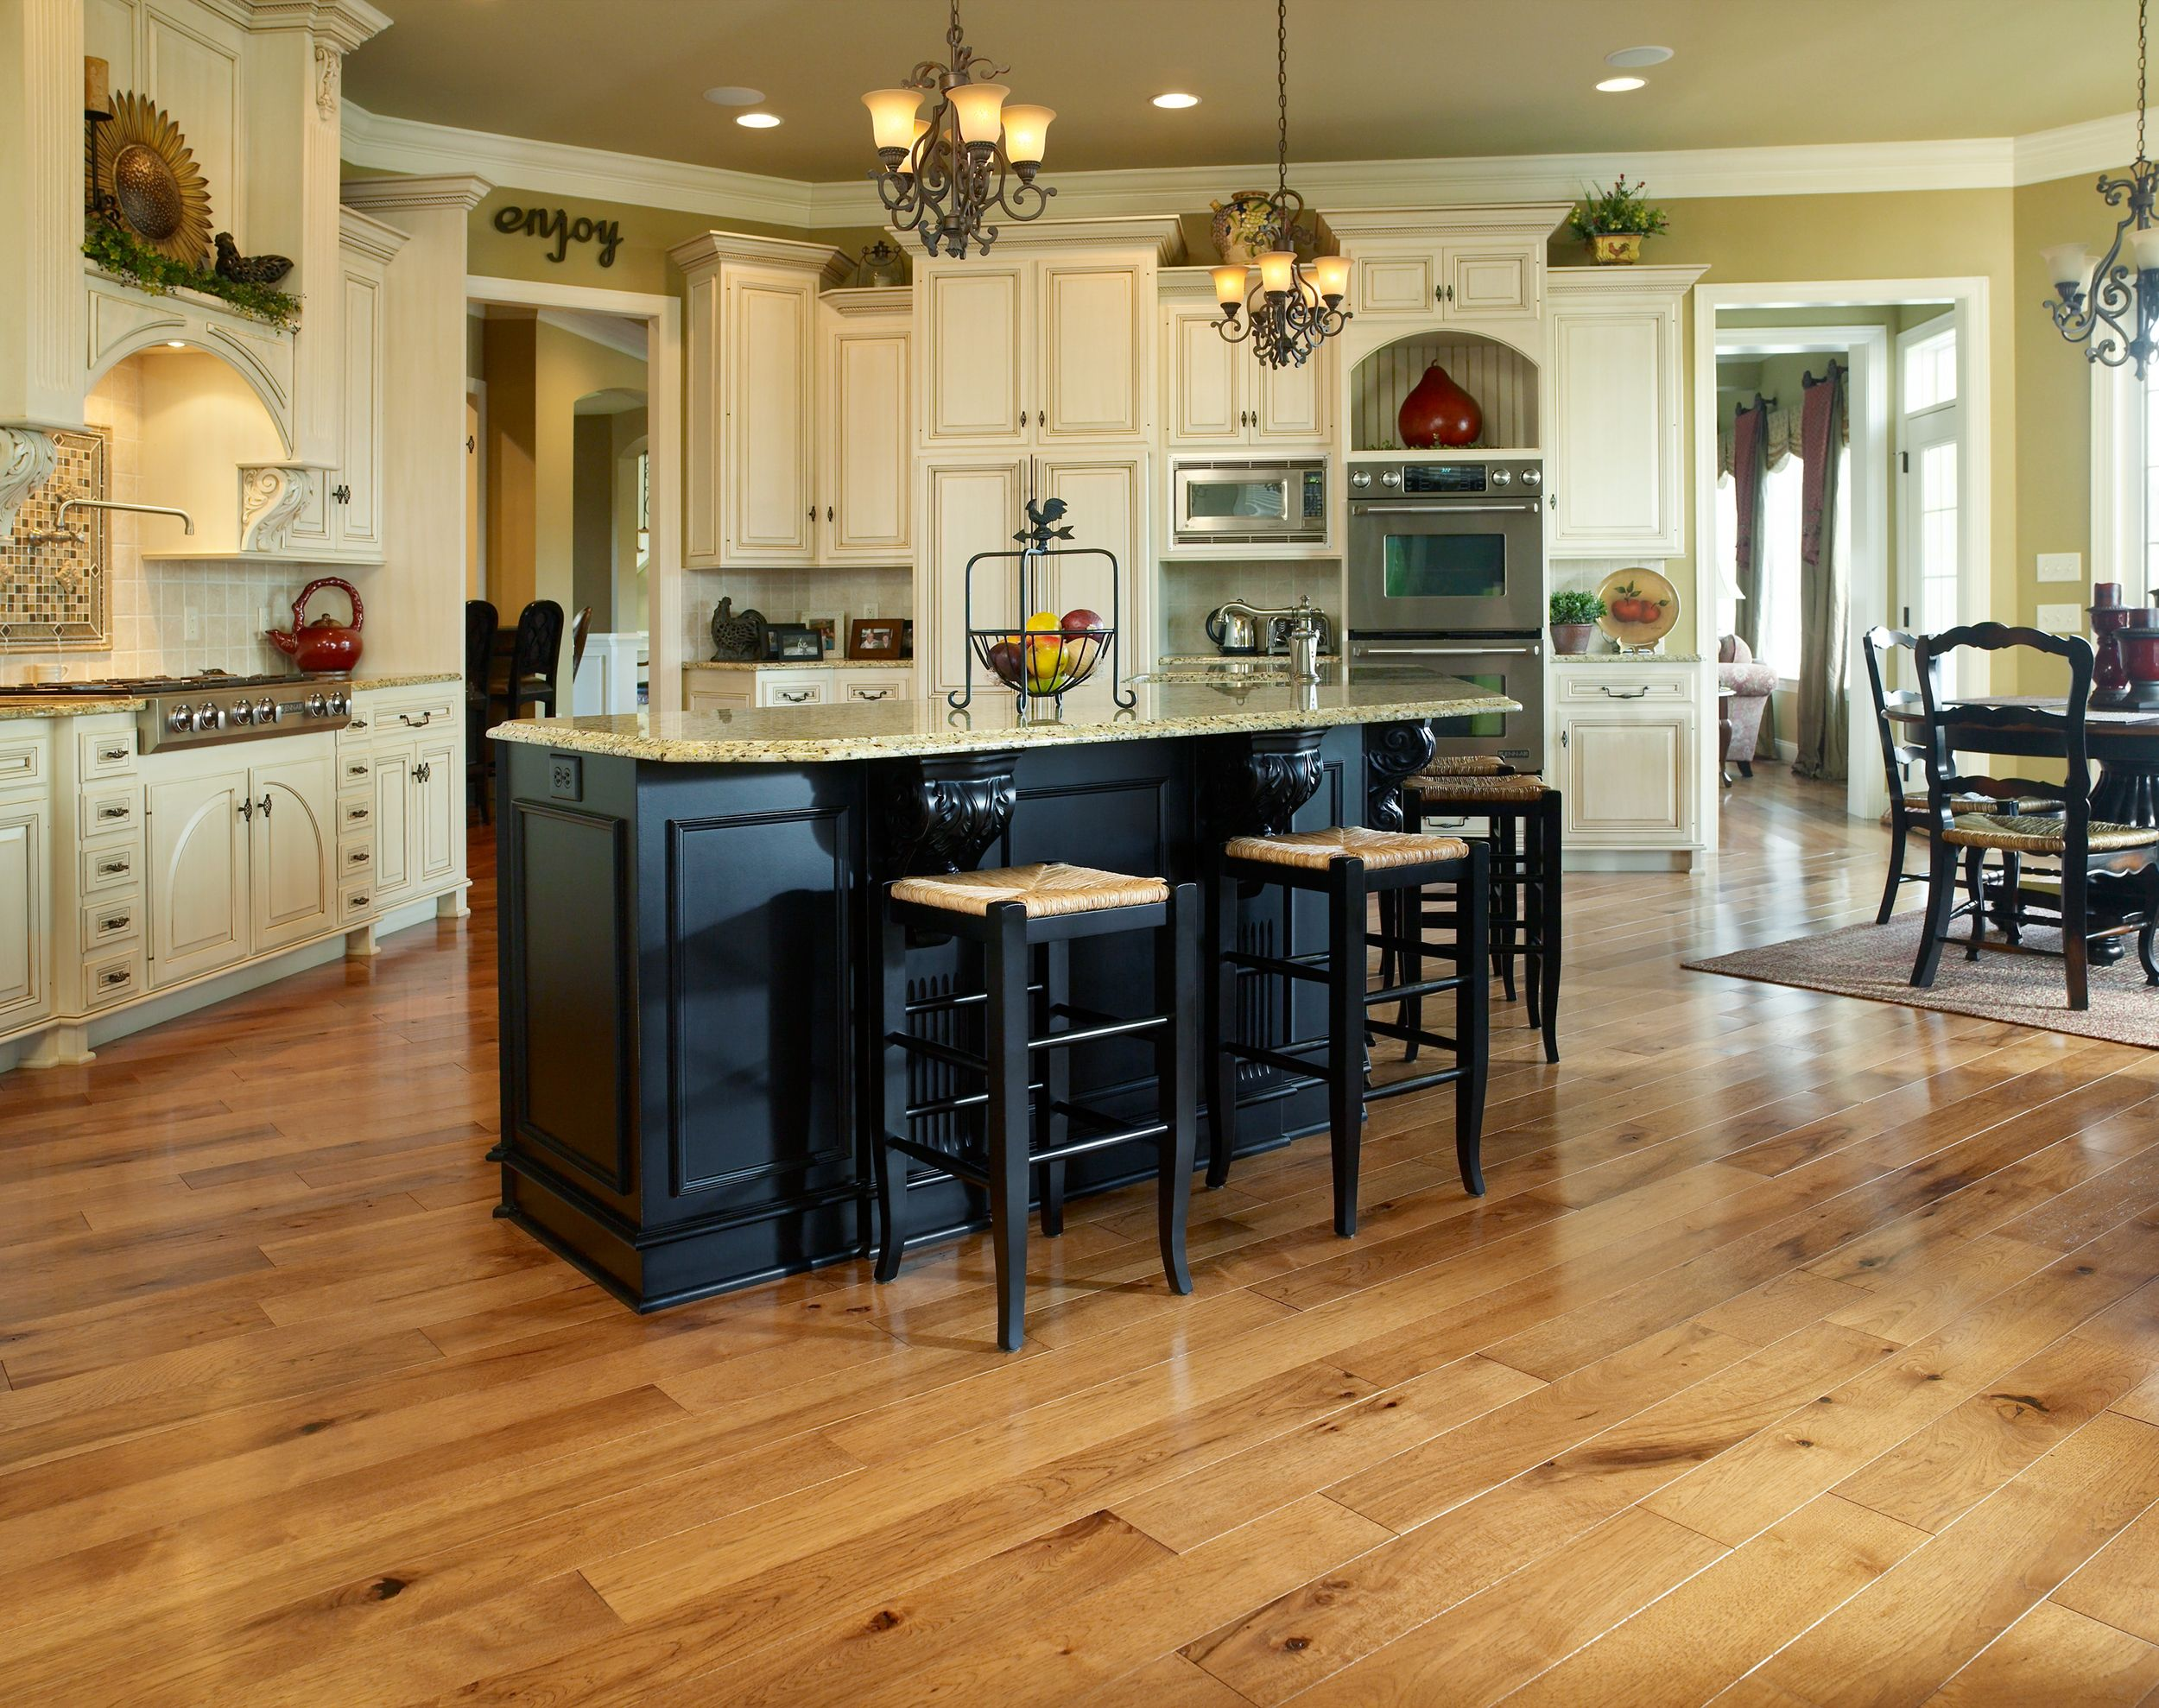 Wooden Floors For Kitchens Plan Hickory Hardwood Flooring Bellawood And Hickory Hardwood